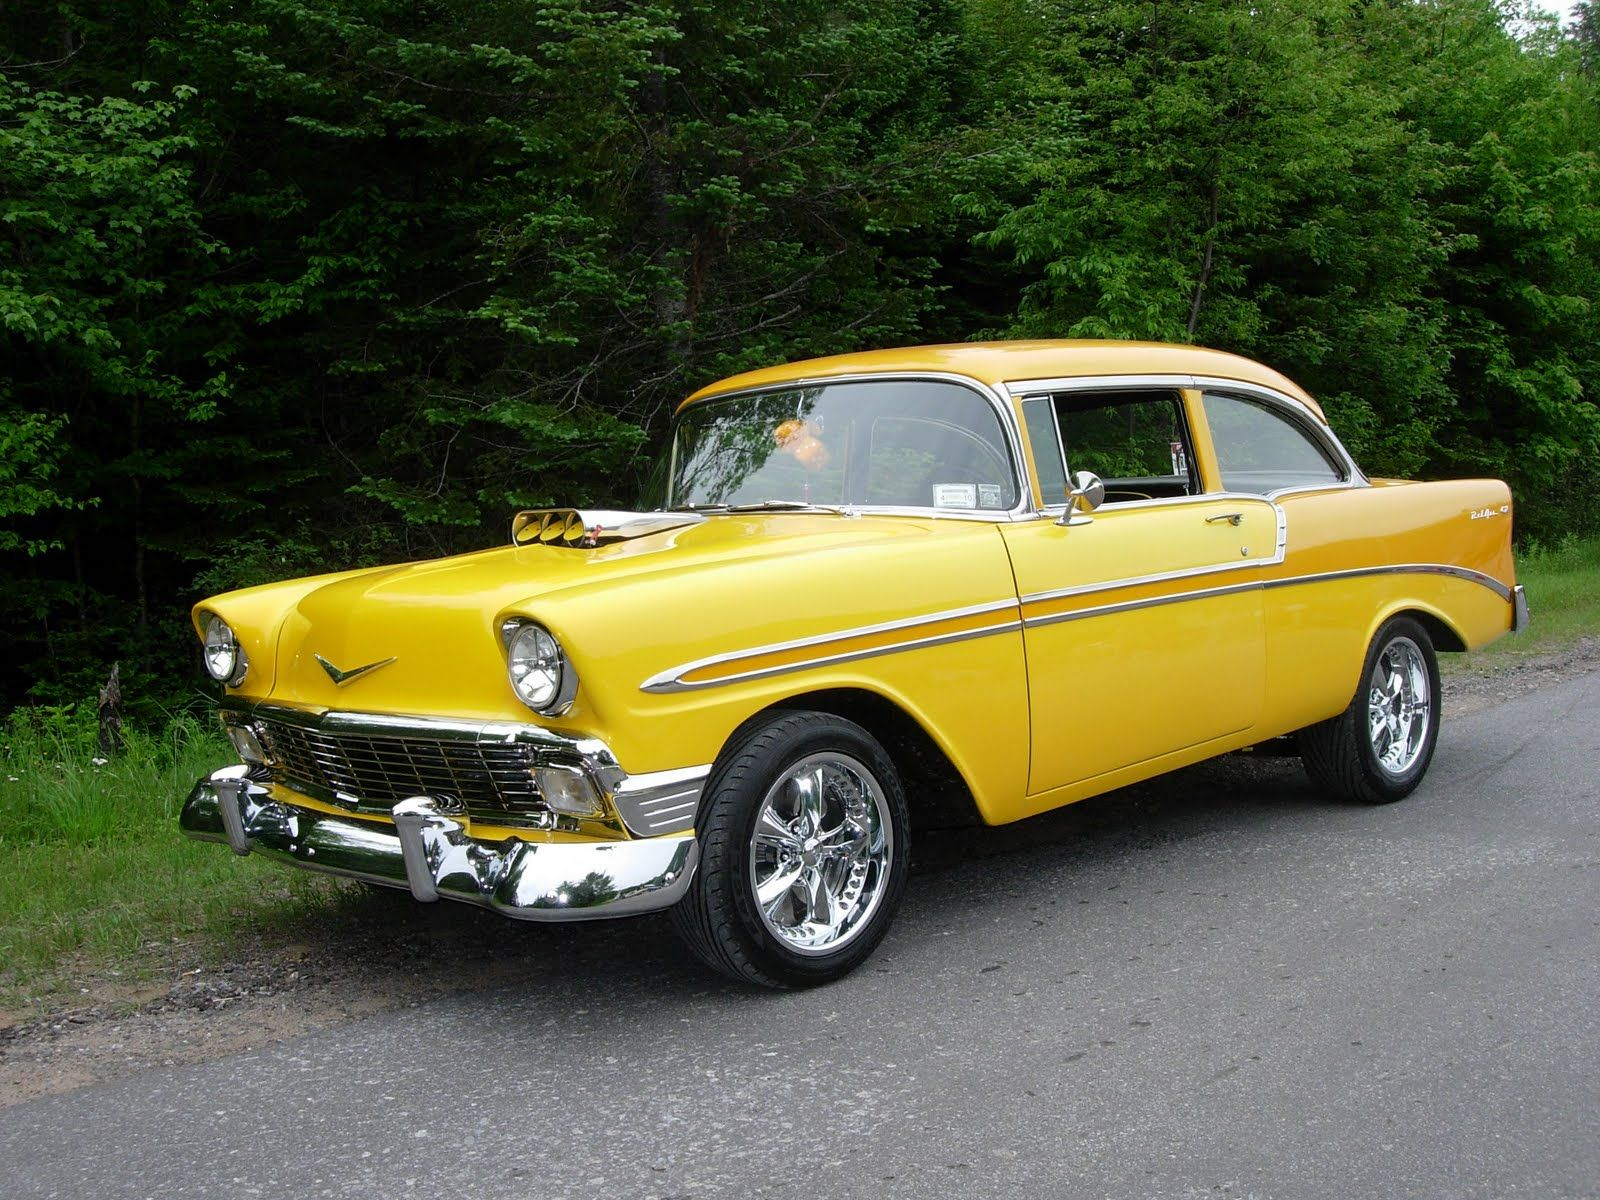 56\' Beauty SHOP SAFE! THIS CAR, AND ANY OTHER CAR YOU PURCHASE ...